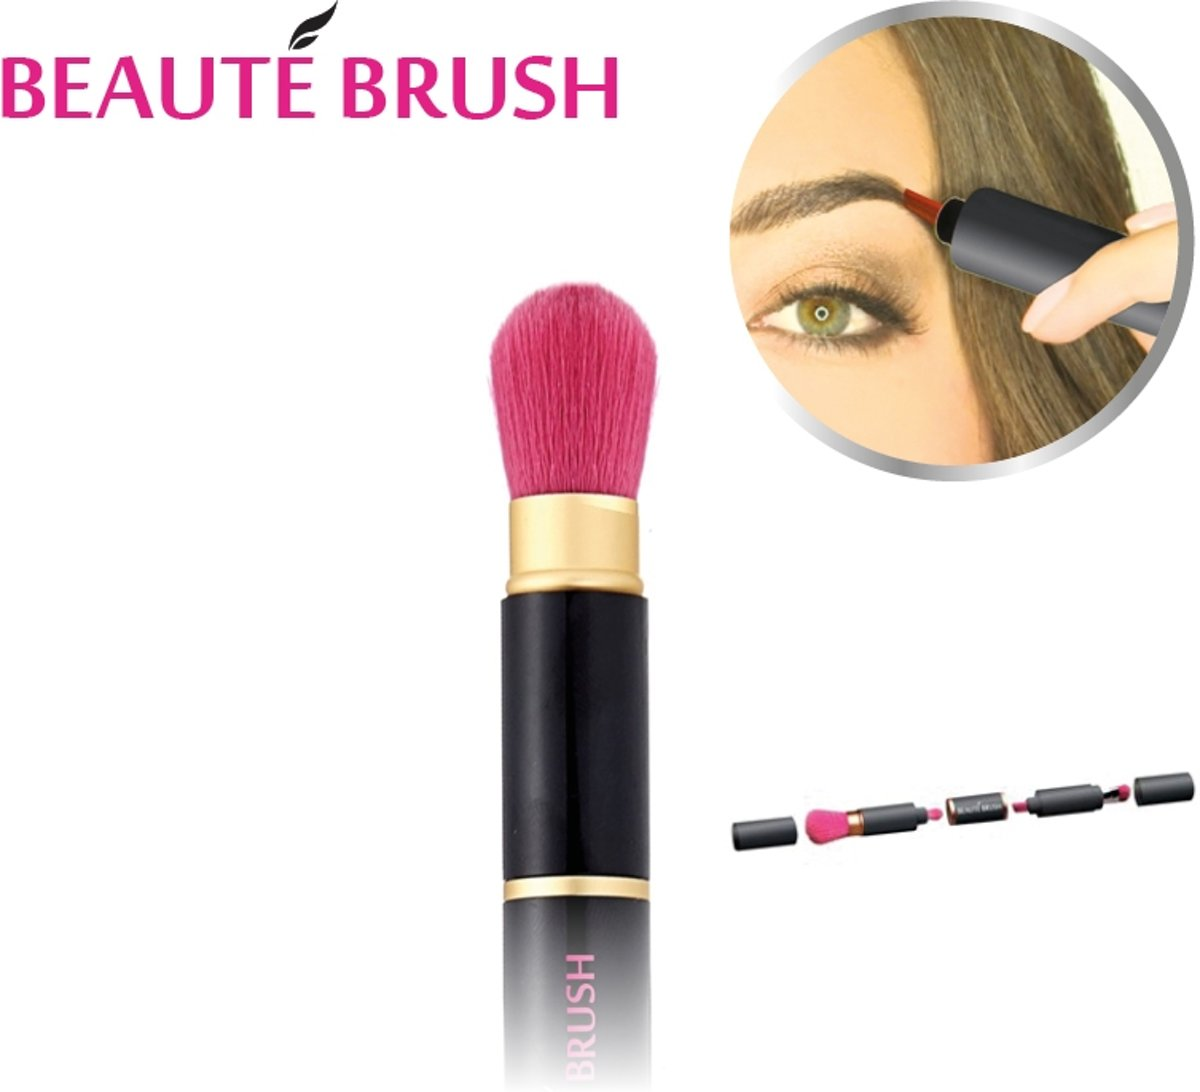 Beauté Brush Black/Pink - 4-in-1 beauty tool